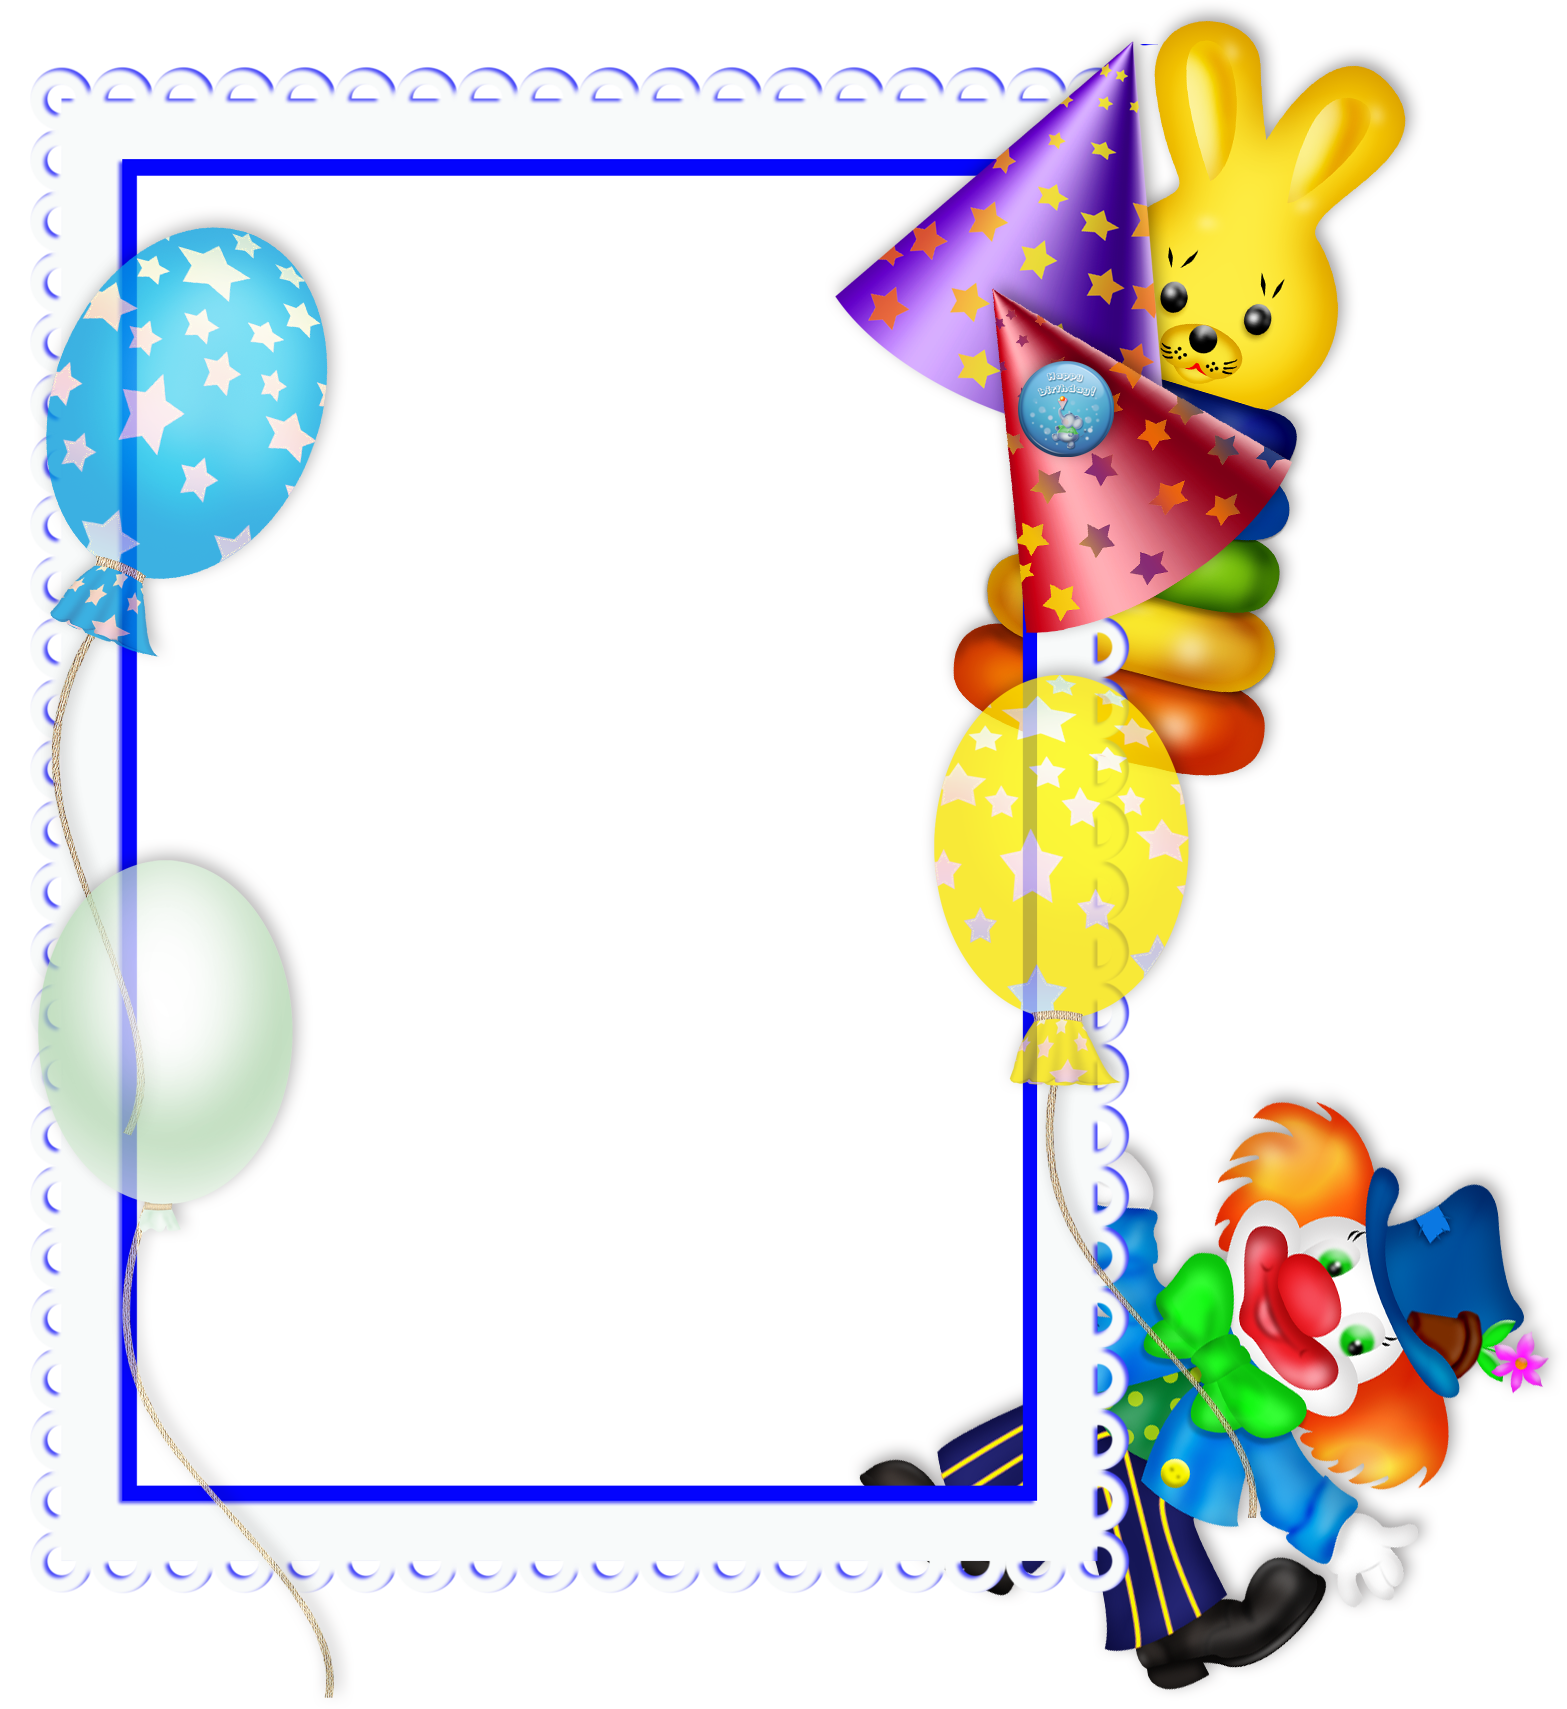 1567x1709 Happy Birthday Transparent Png Party Frame Stationary 2